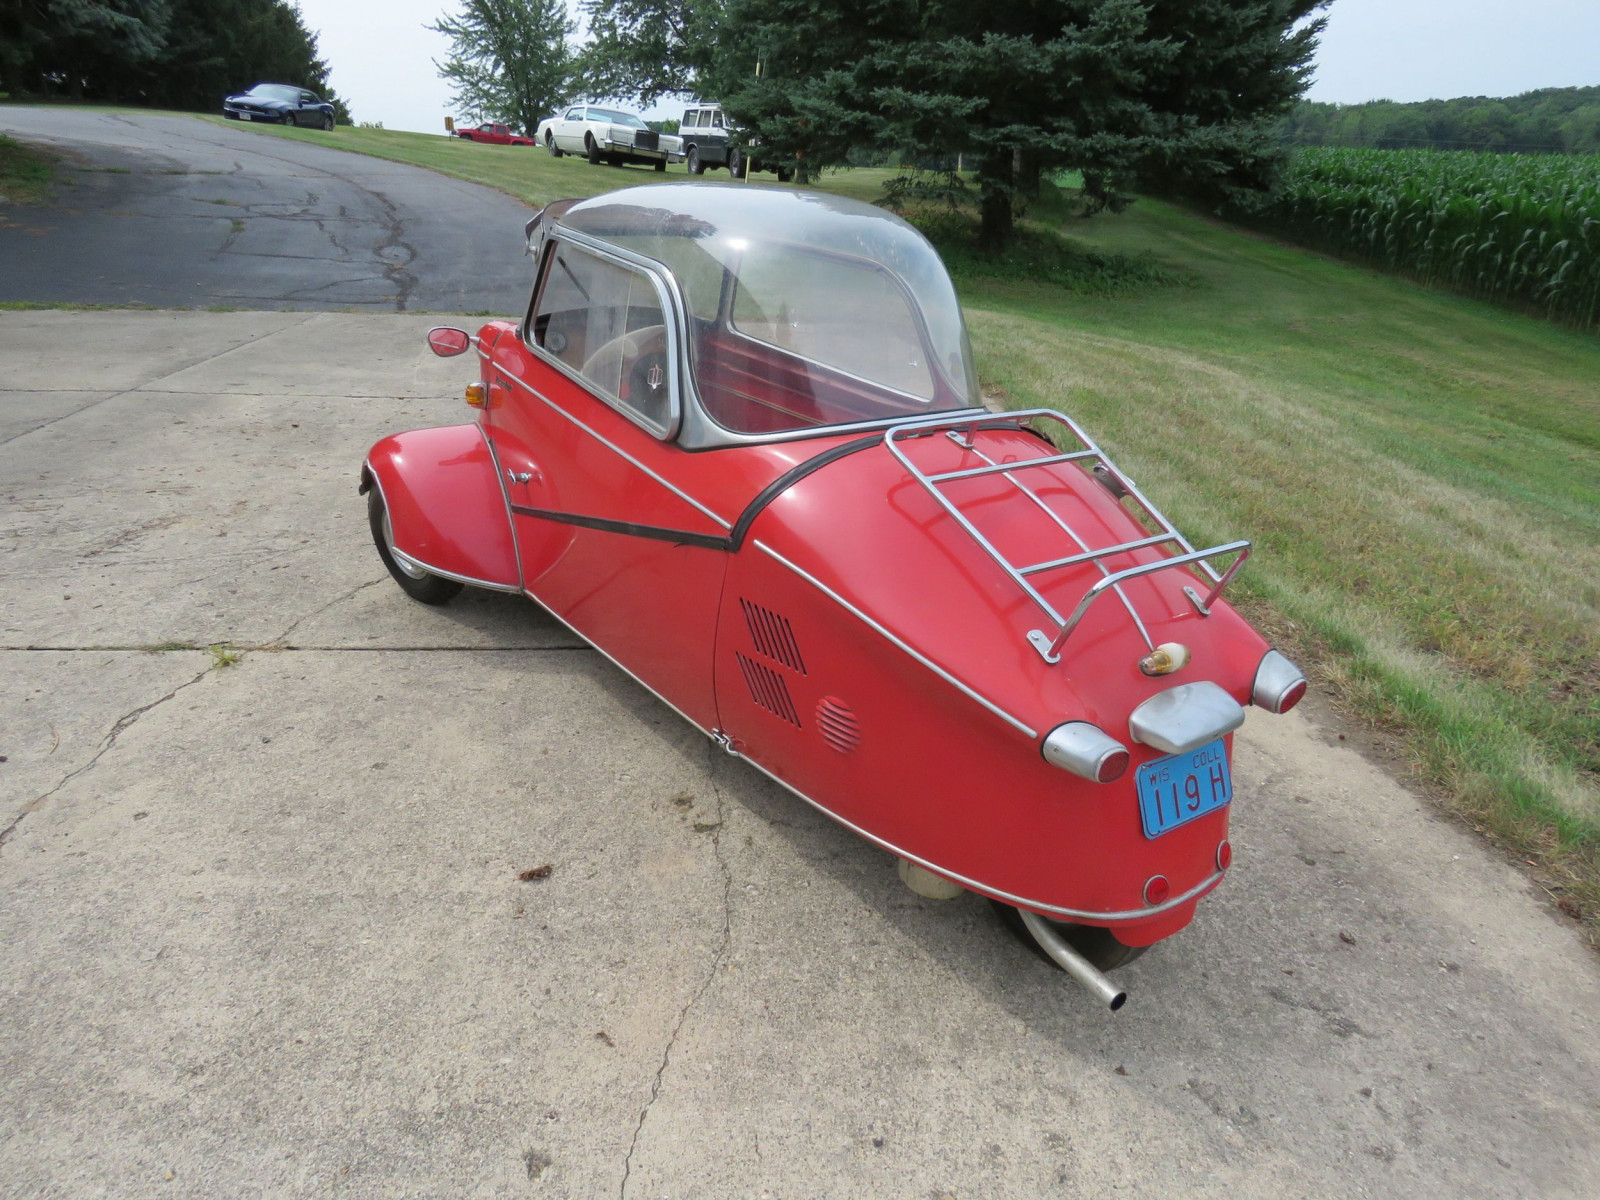 1959 Messerschmitt      KR-200 BubbleTop Coupe - Image 6